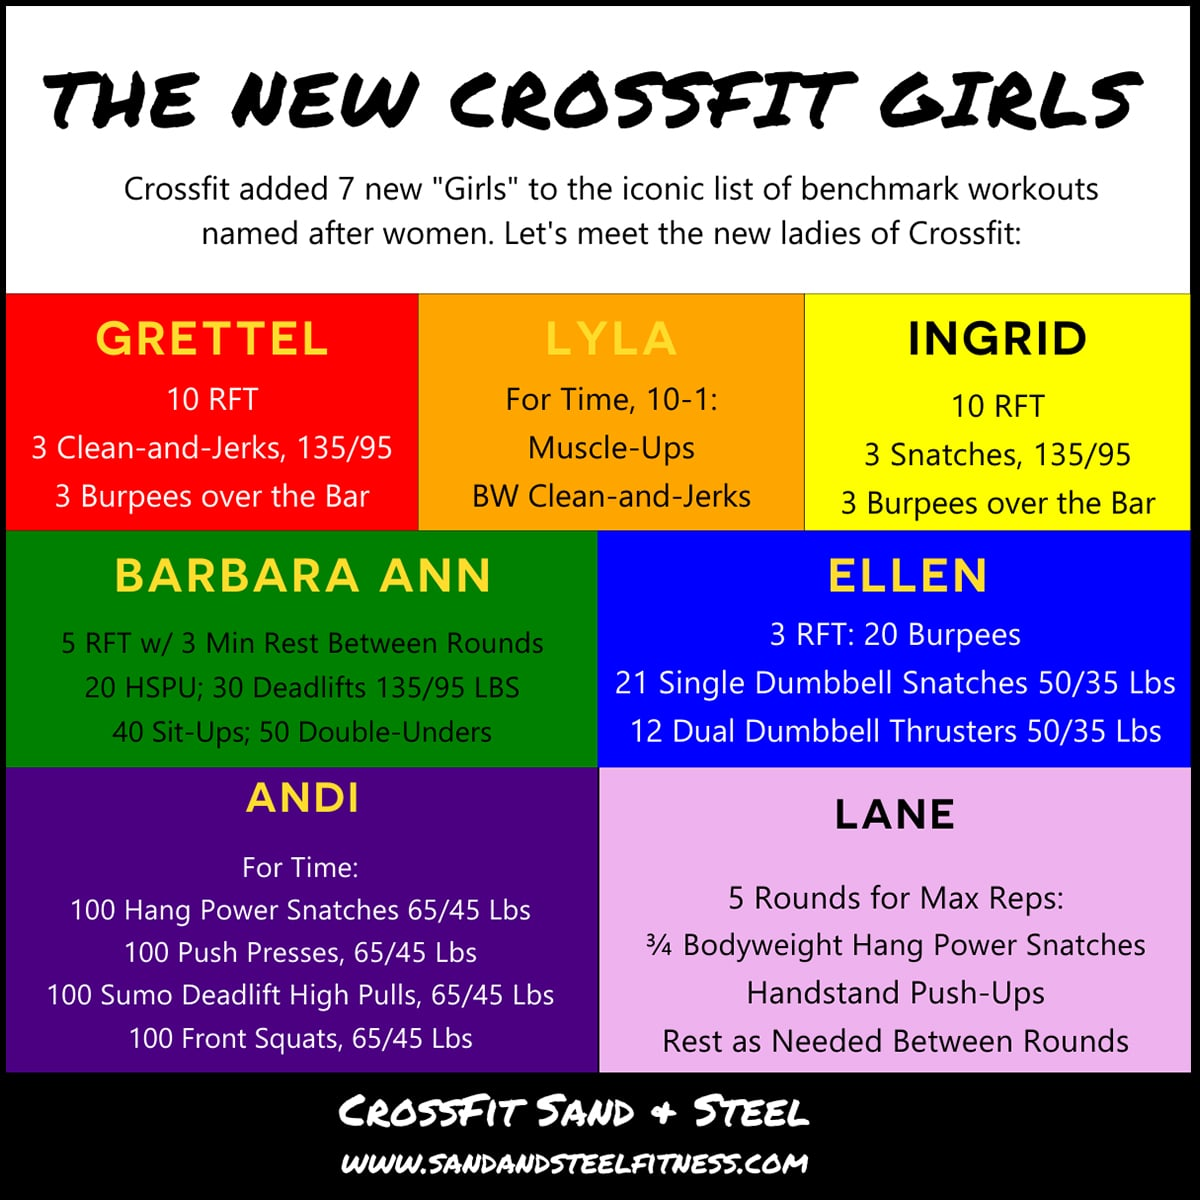 The 7 New CrossFit Girls